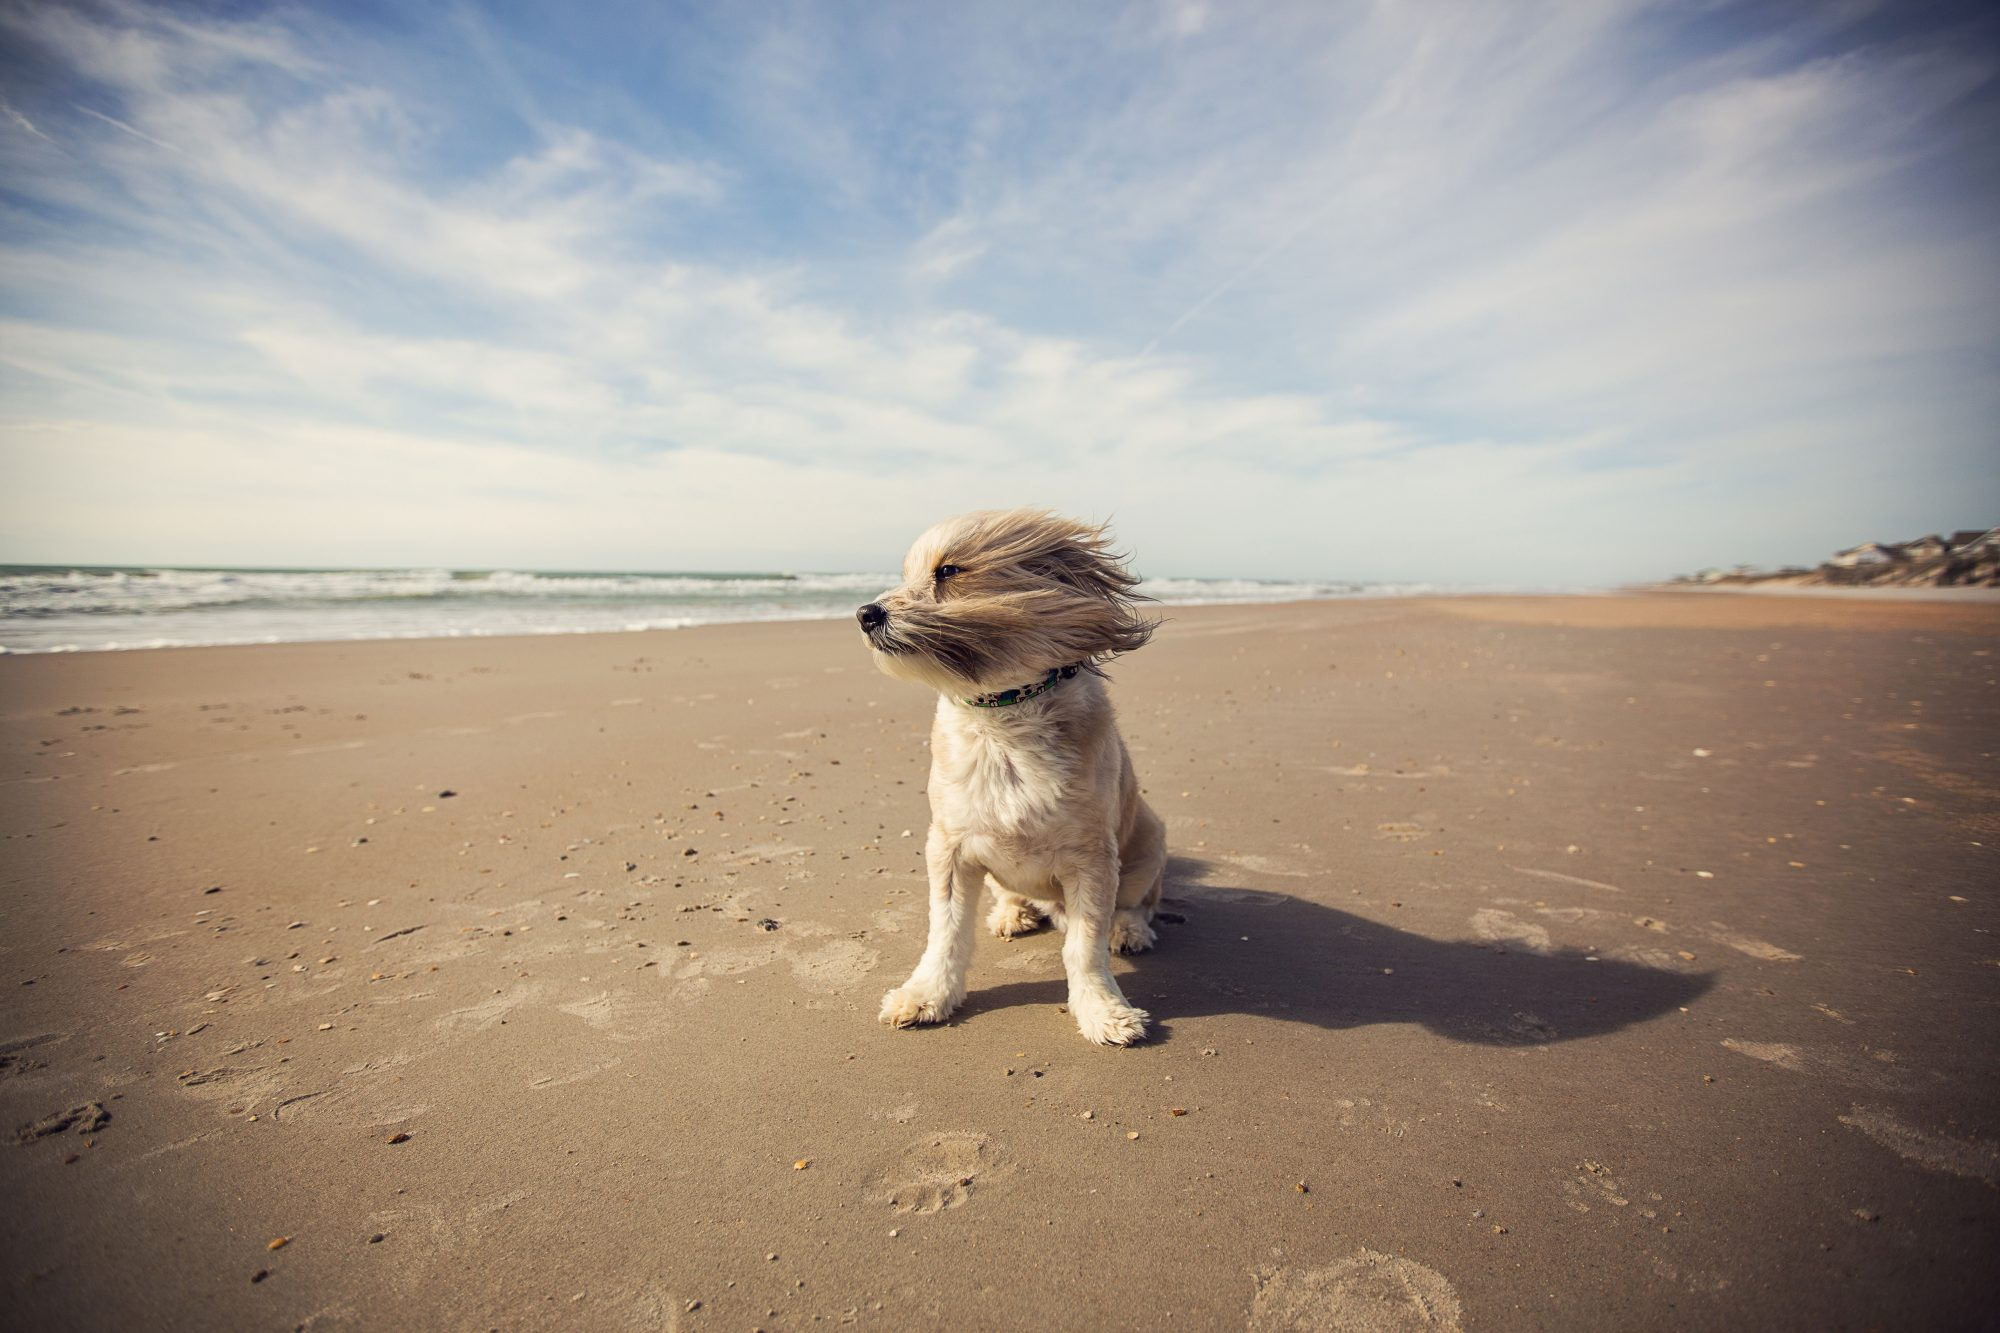 Small dog running on beach